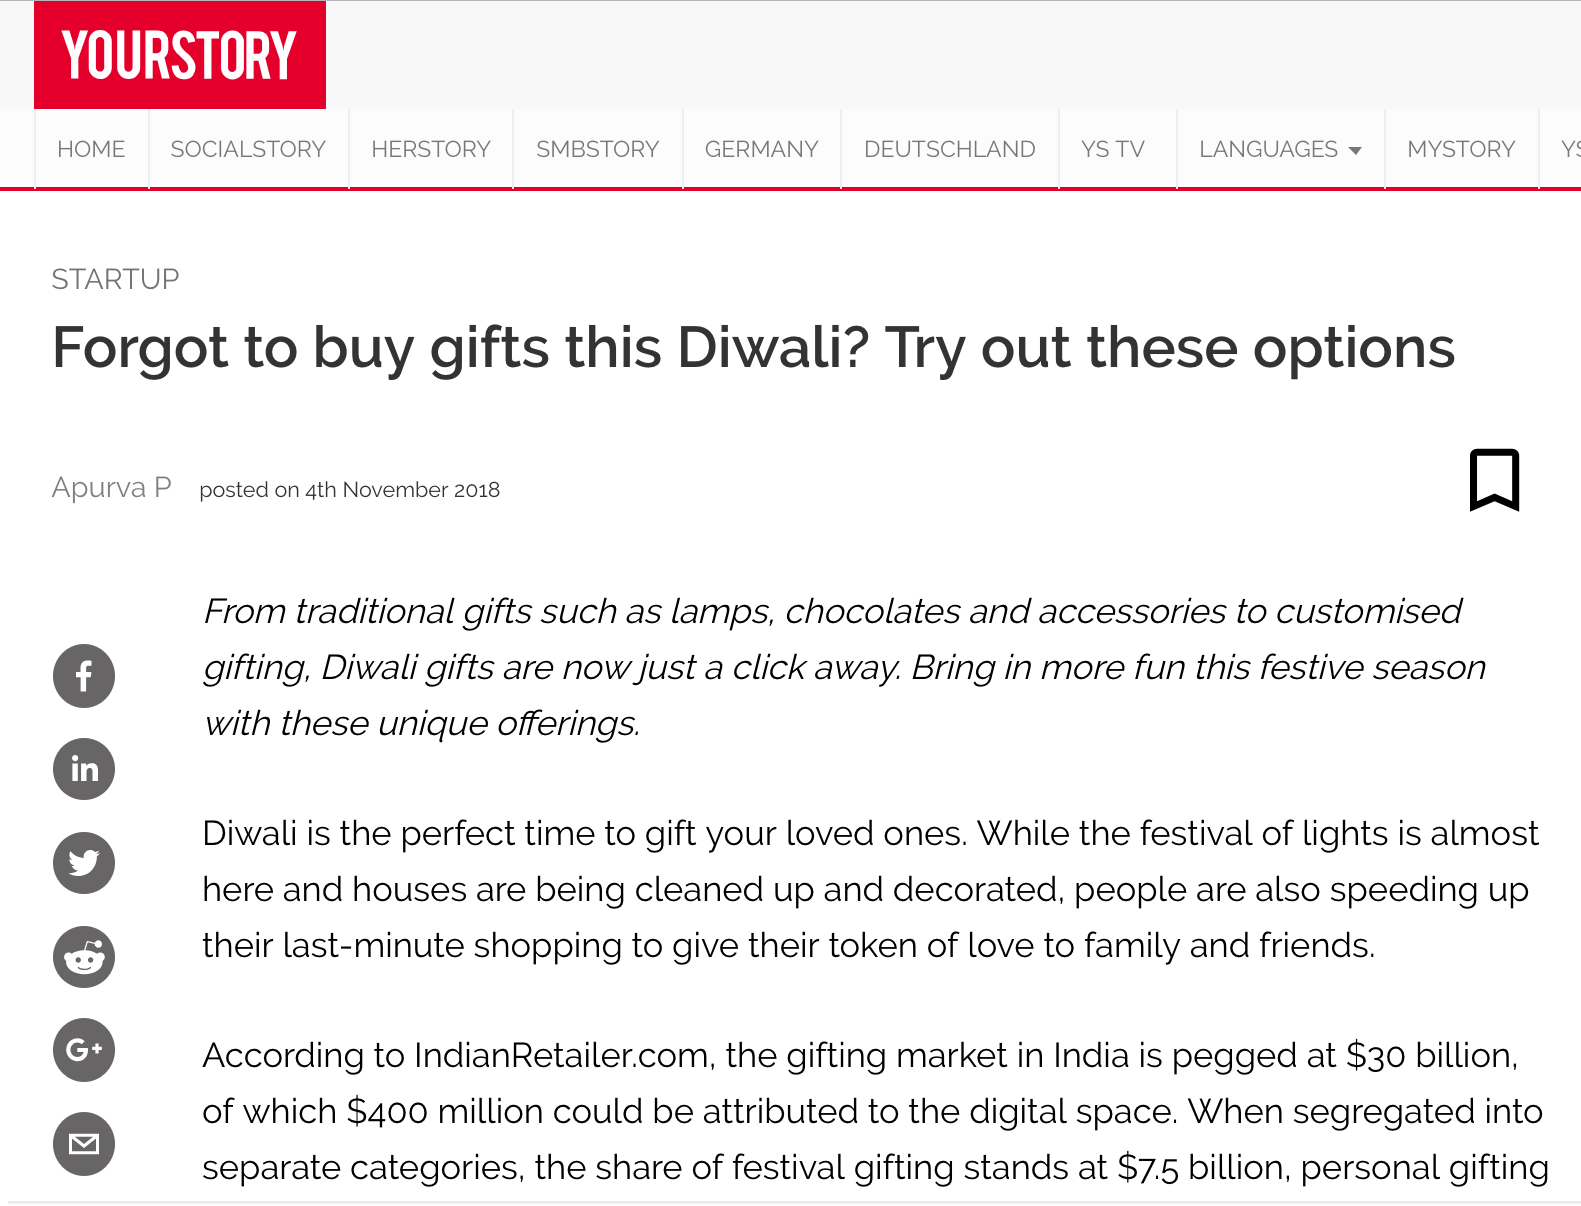 YourStory | Forgot to buy gifts this Diwali? Try out these options